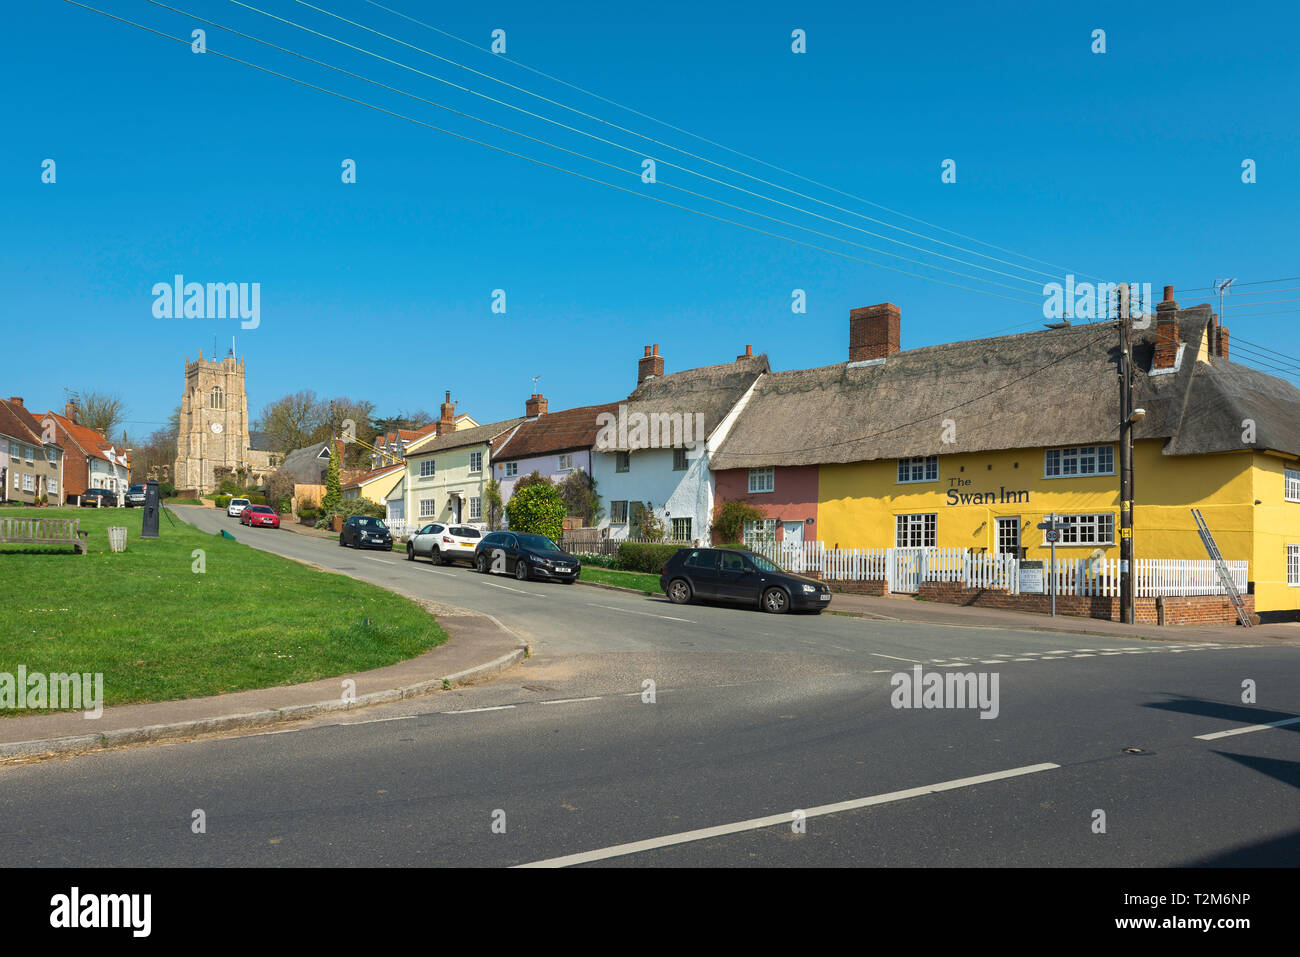 Monks Eleigh Suffolk, view across the village green towards Church Hill in Monks Eleigh, with the Swan Inn pub sited on the right, Babergh district,UK - Stock Image